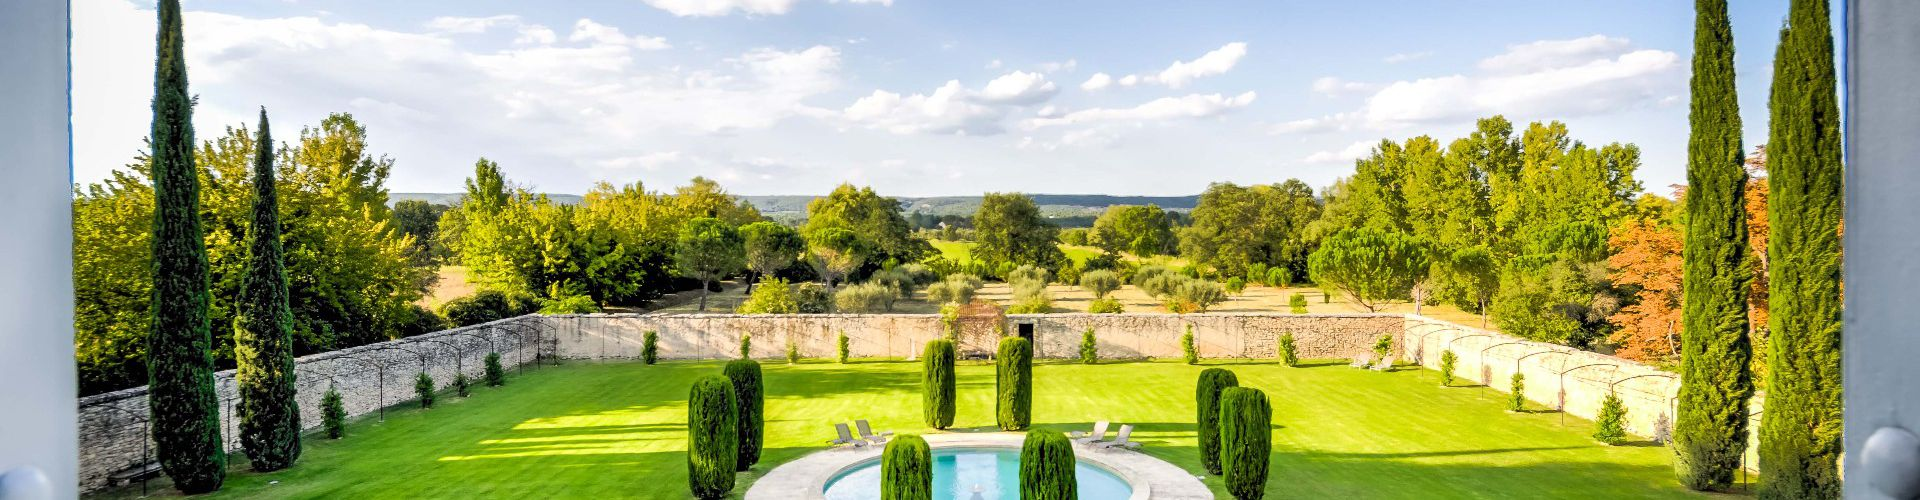 Find a property - Achat immobilier d'exception Languedoc Roussillon